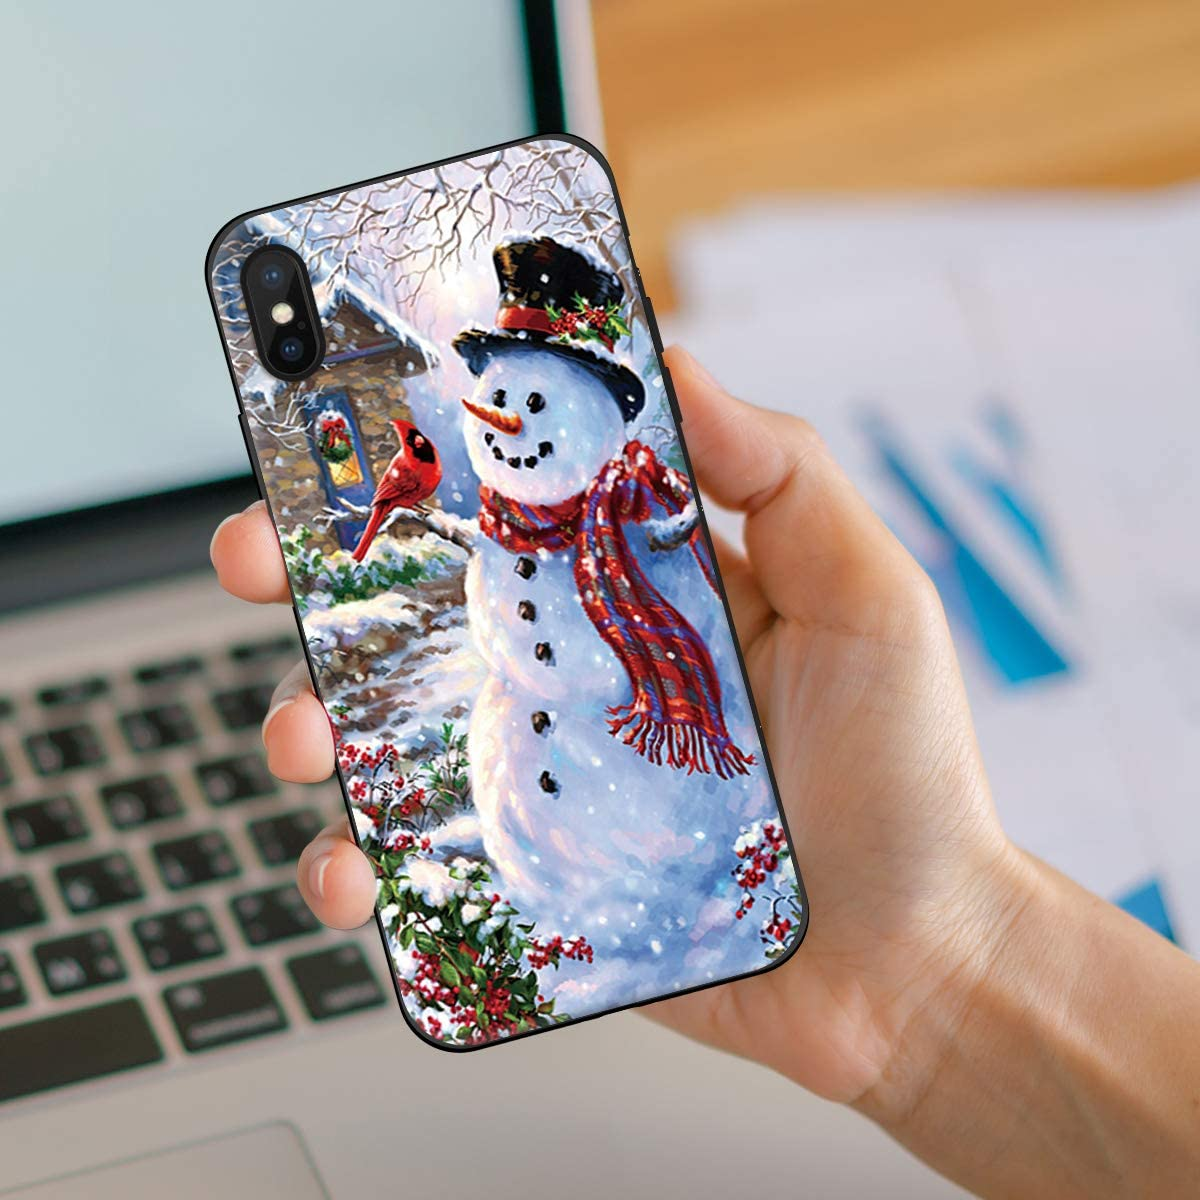 for iPhone 7 Puls Case, iPhone 8 Plus Case, Soft Silicone Gel Rubber Bumper Case Merry Christmas Happy Snowman and Cardinals Decorative Xmas New Year Holiday Pattern Shockproof TPU Case Phone Cover